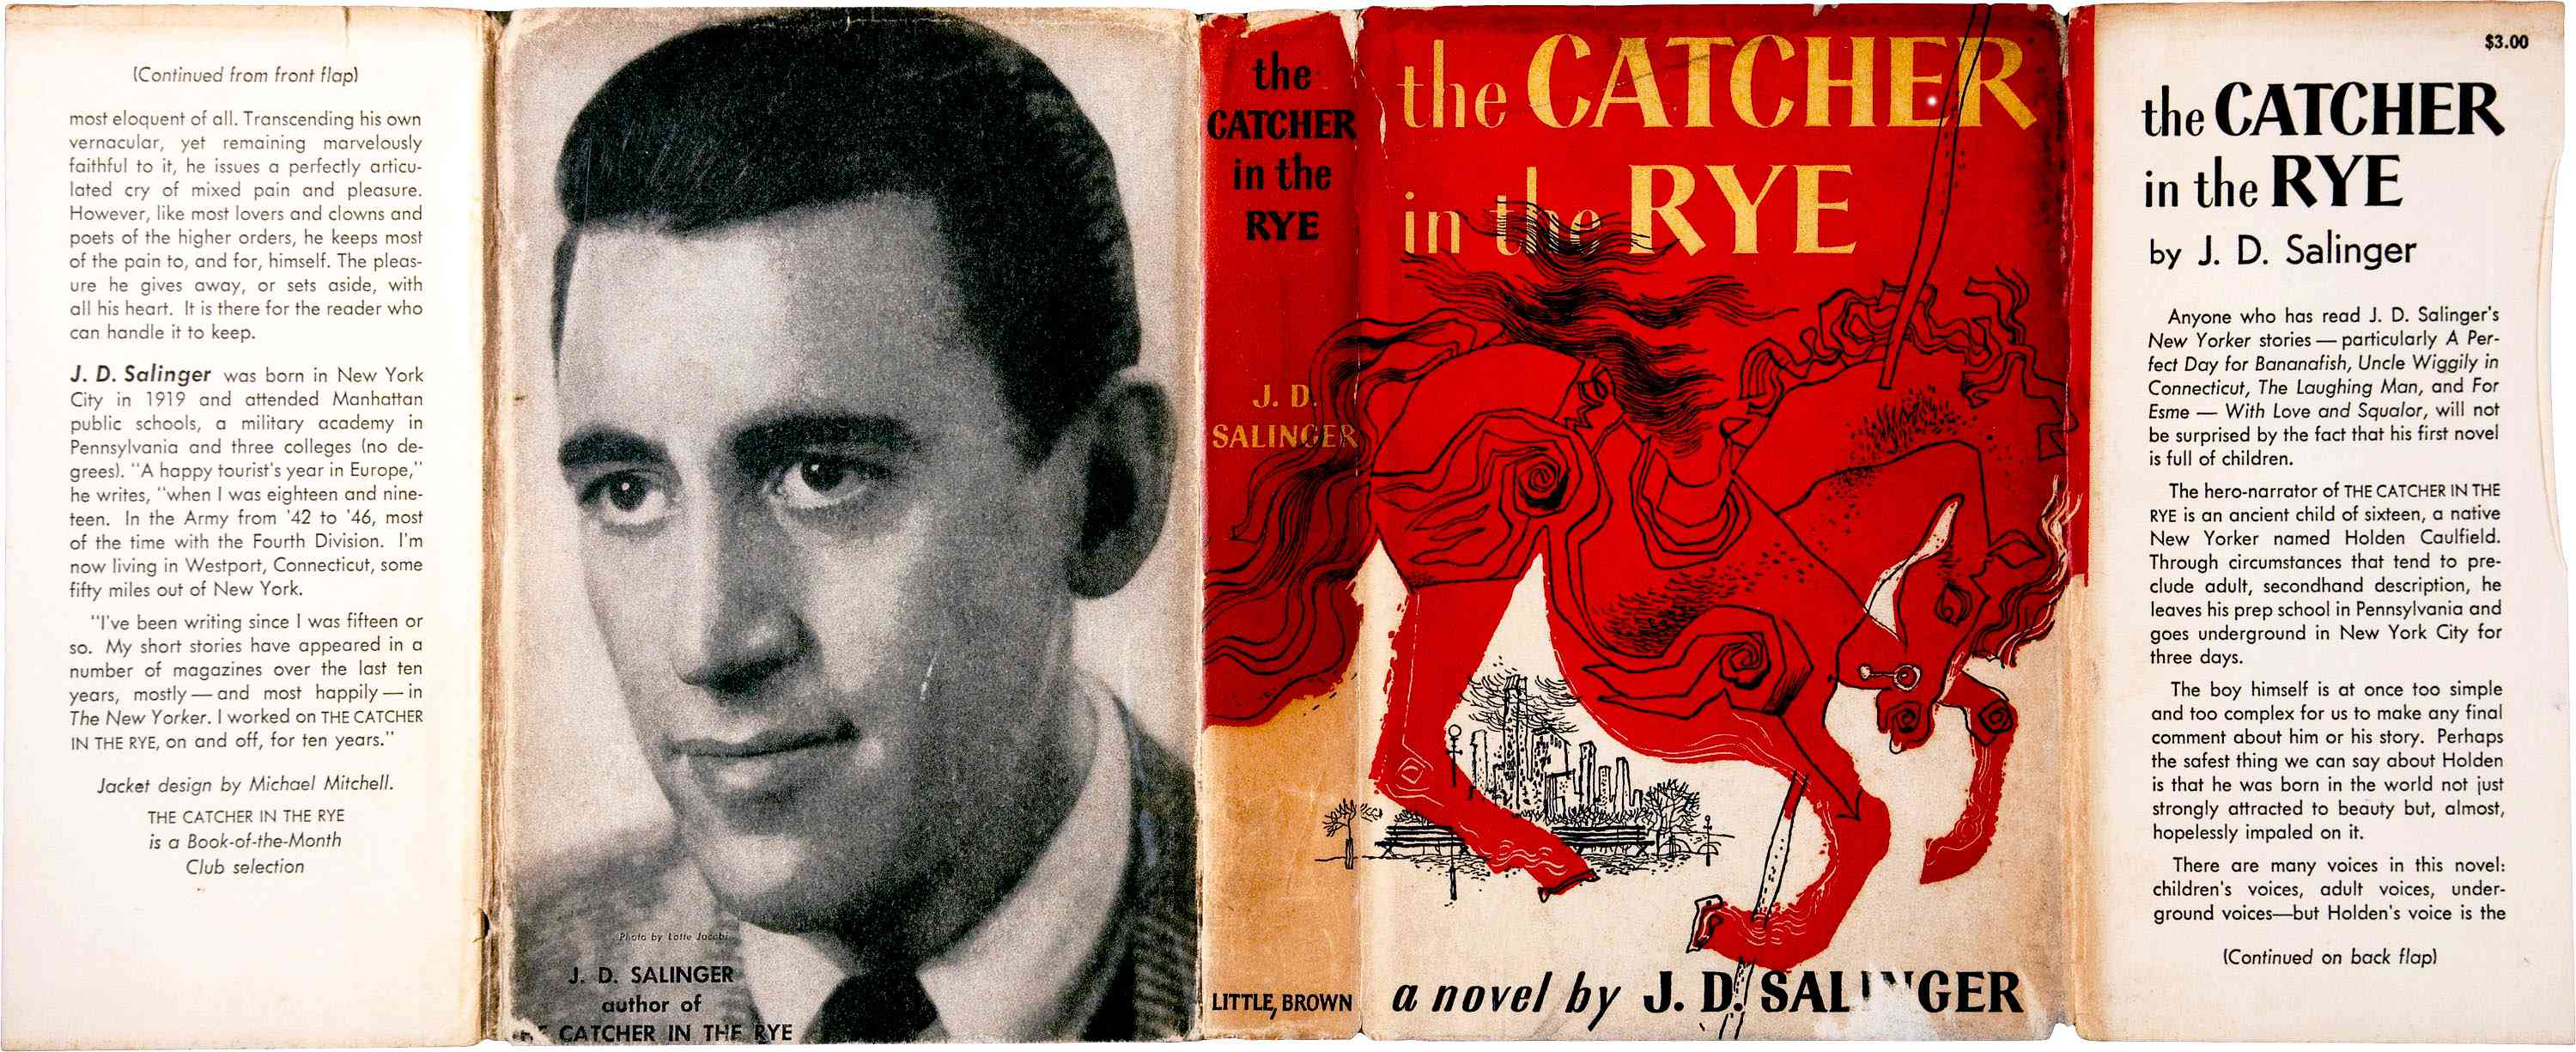 Biography Of J D Salinger American Writer